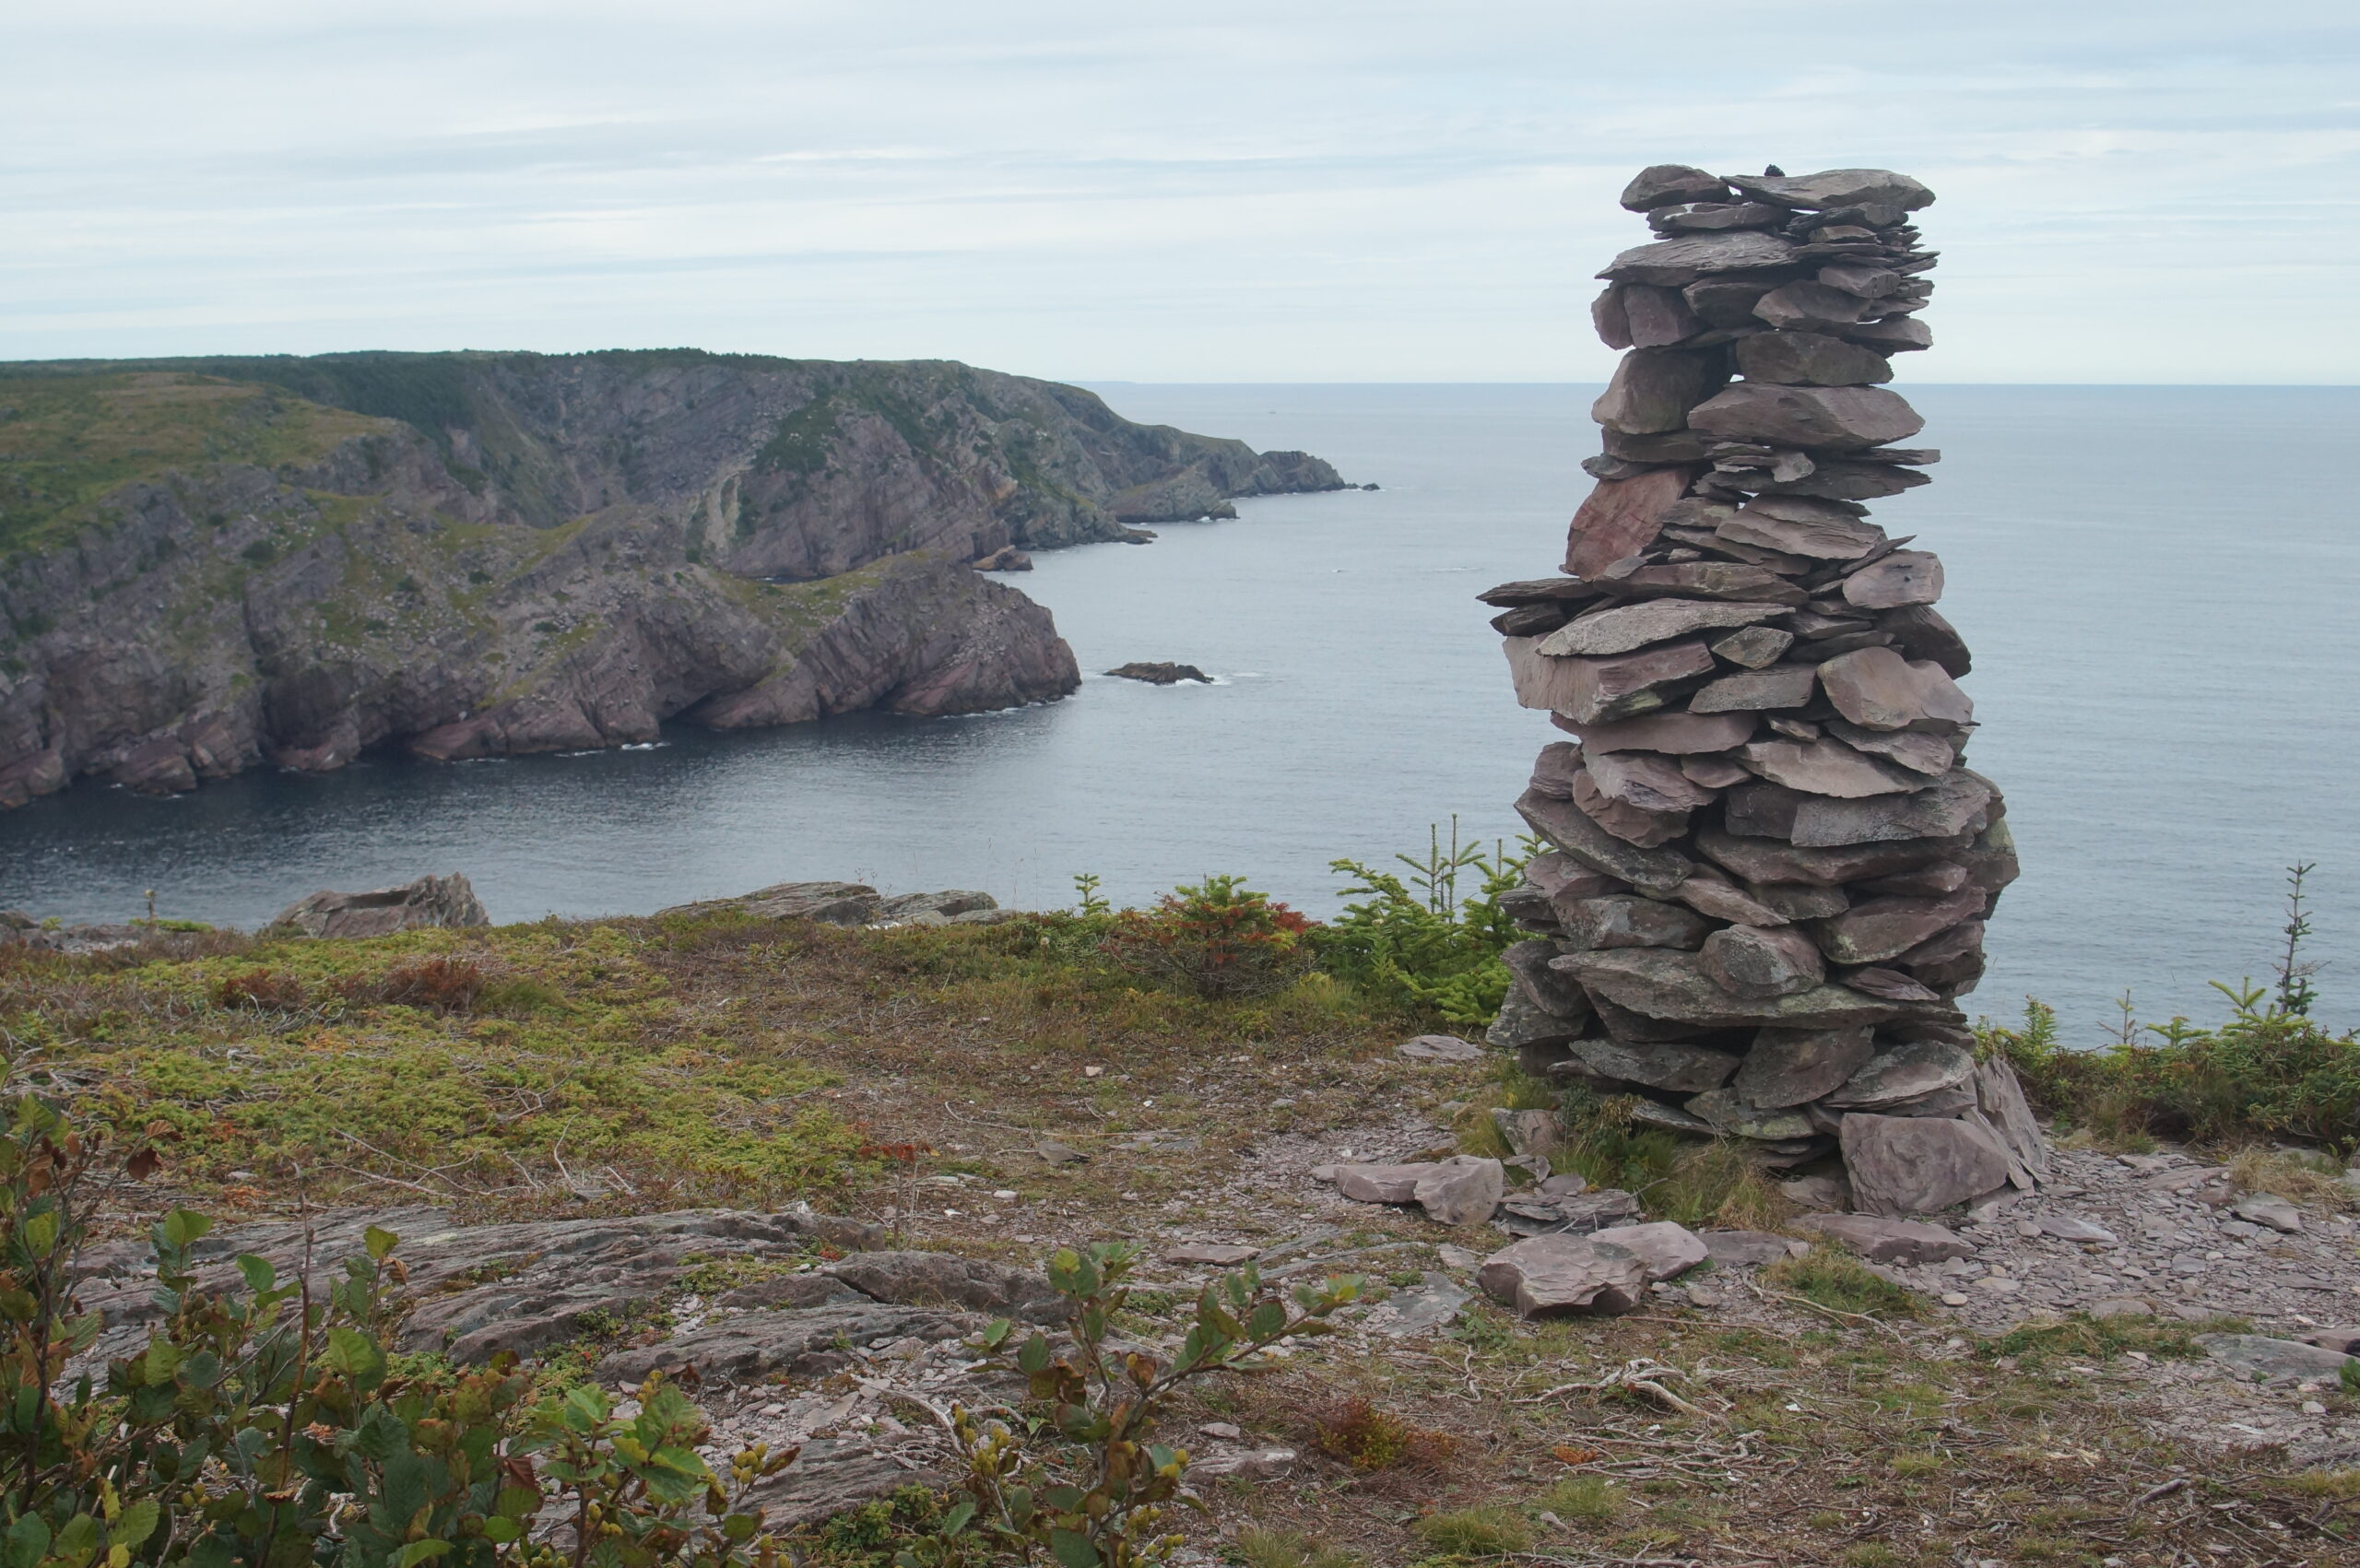 From the UK to Random Island. Has a 130-year old mystery been solved?